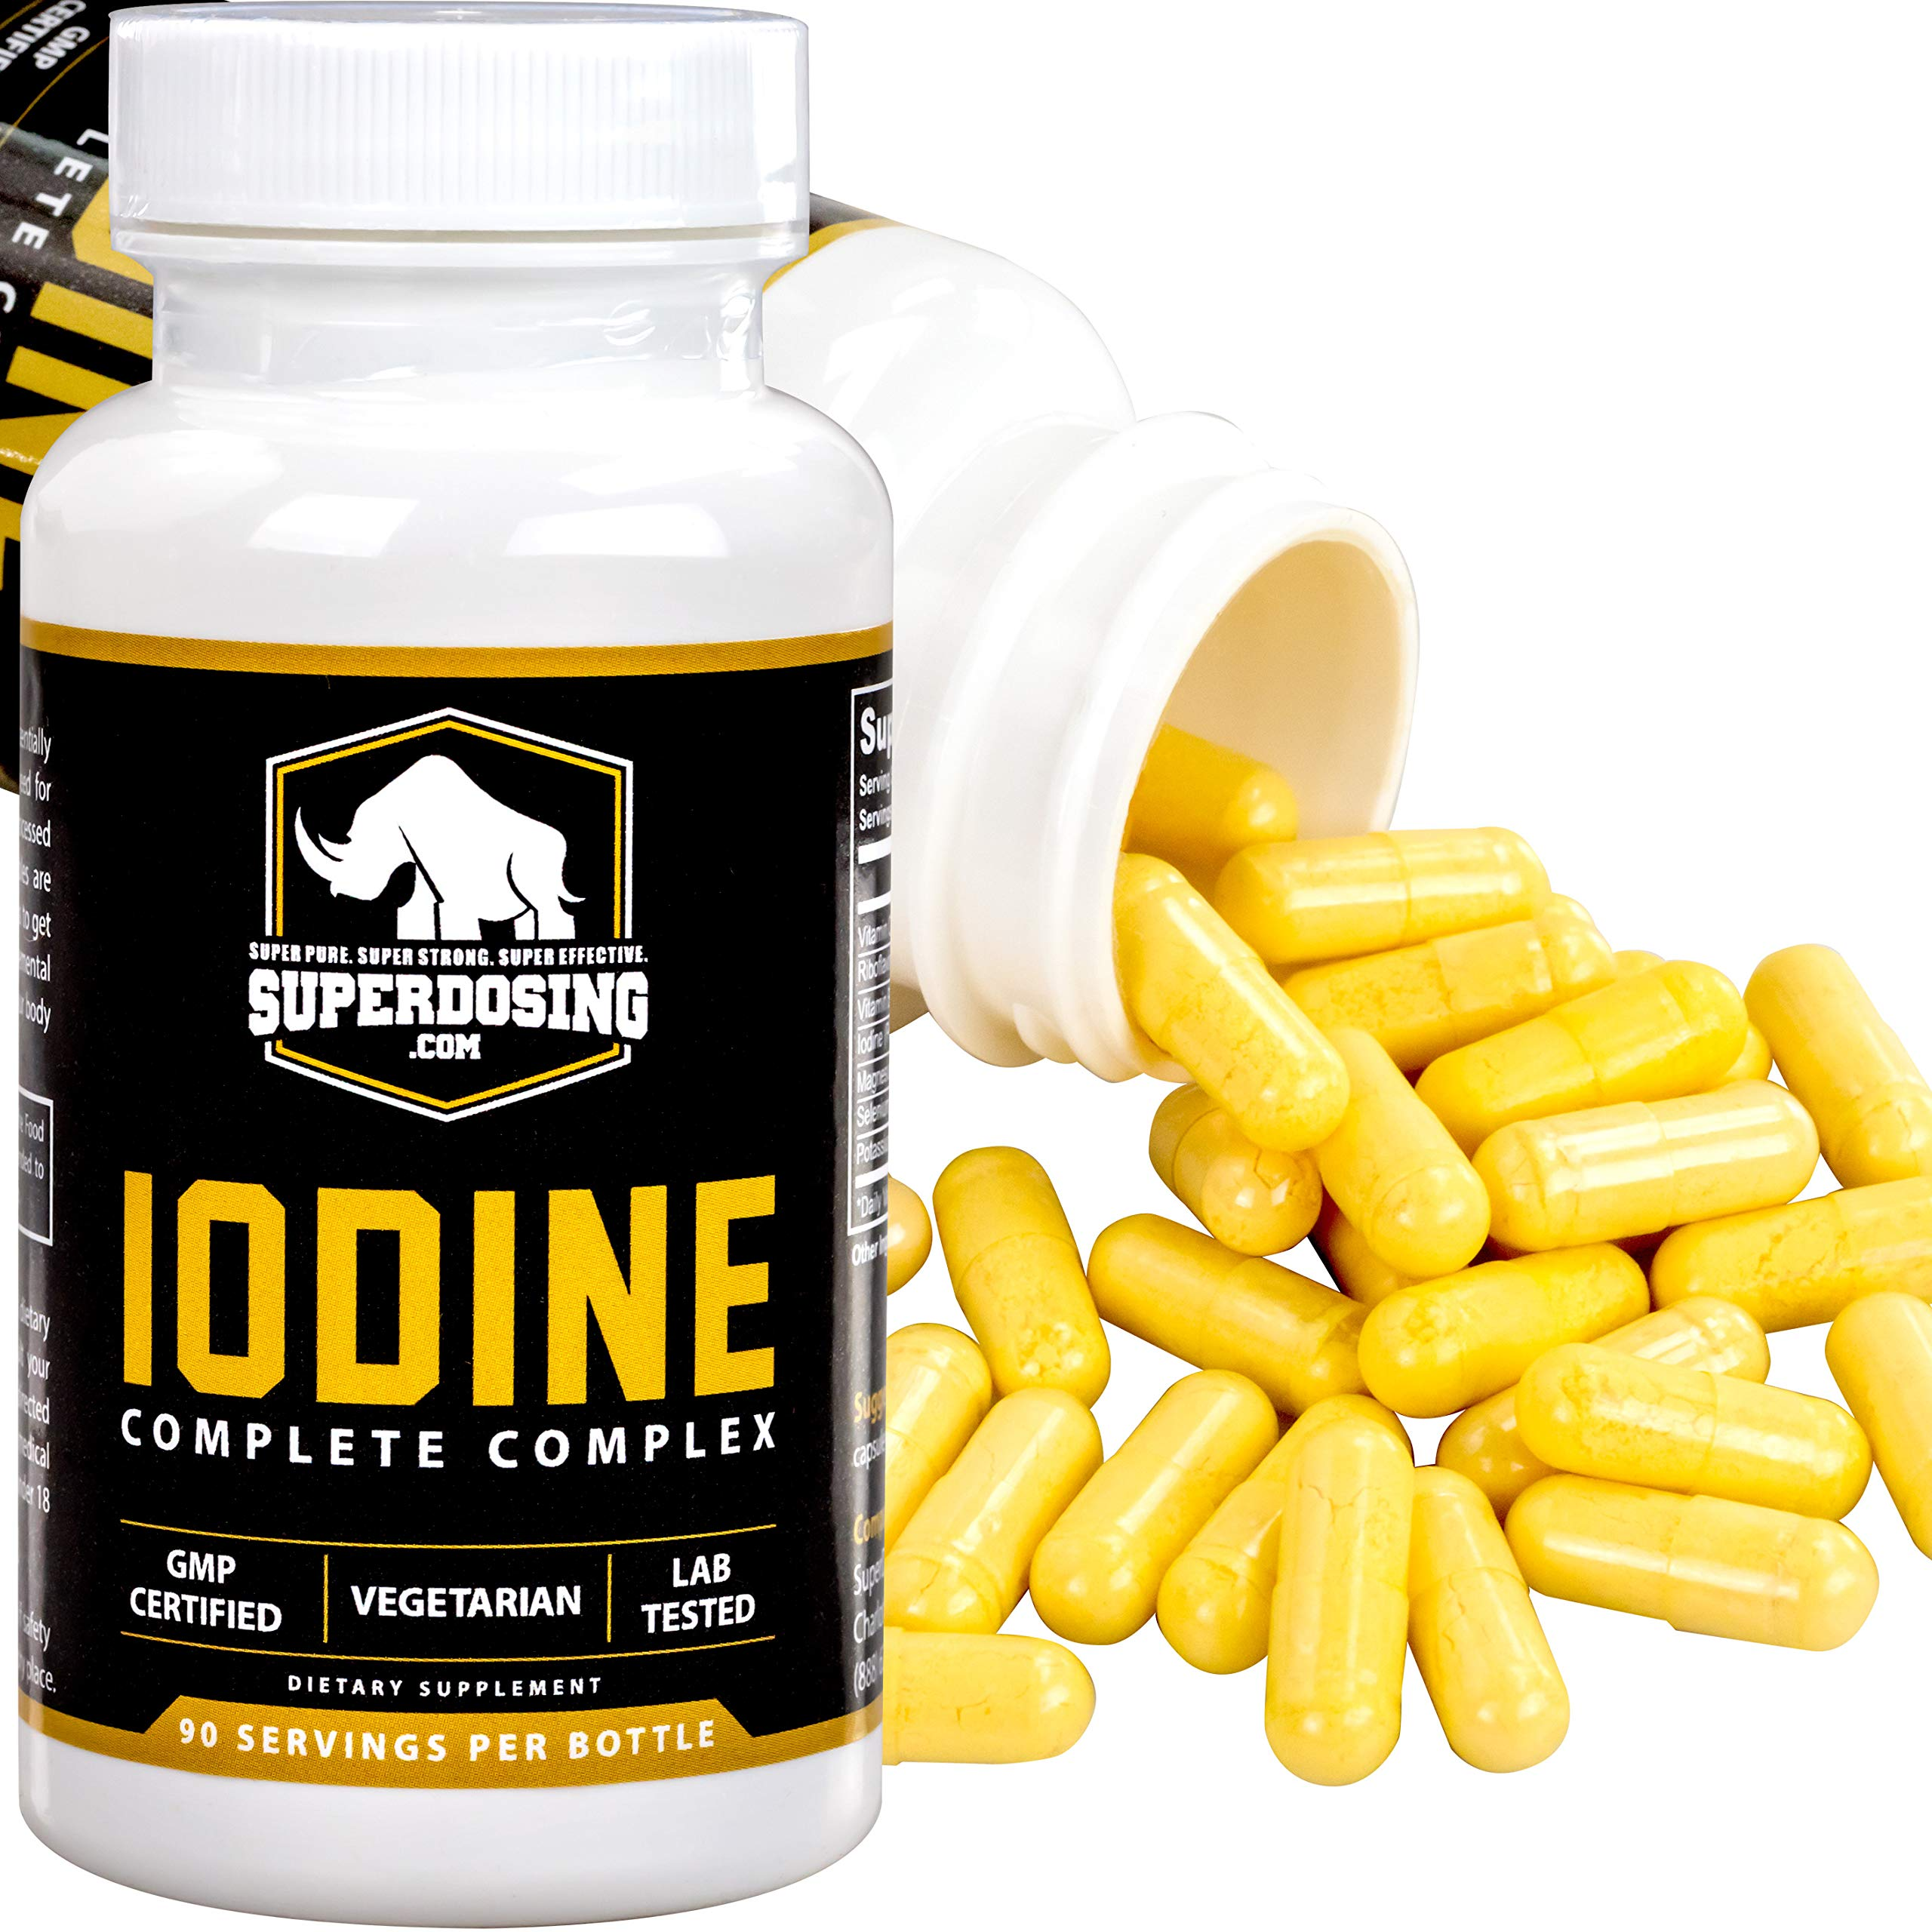 Iodine Complete Complex for Thyroid Support by SuperDosing - 90 Capsules. With Selenium, B Vitamins, Magnesium and Vitamin C. The Supplement Solution Men and Women Need for Glandular and Adrenal Care by SuperDosing